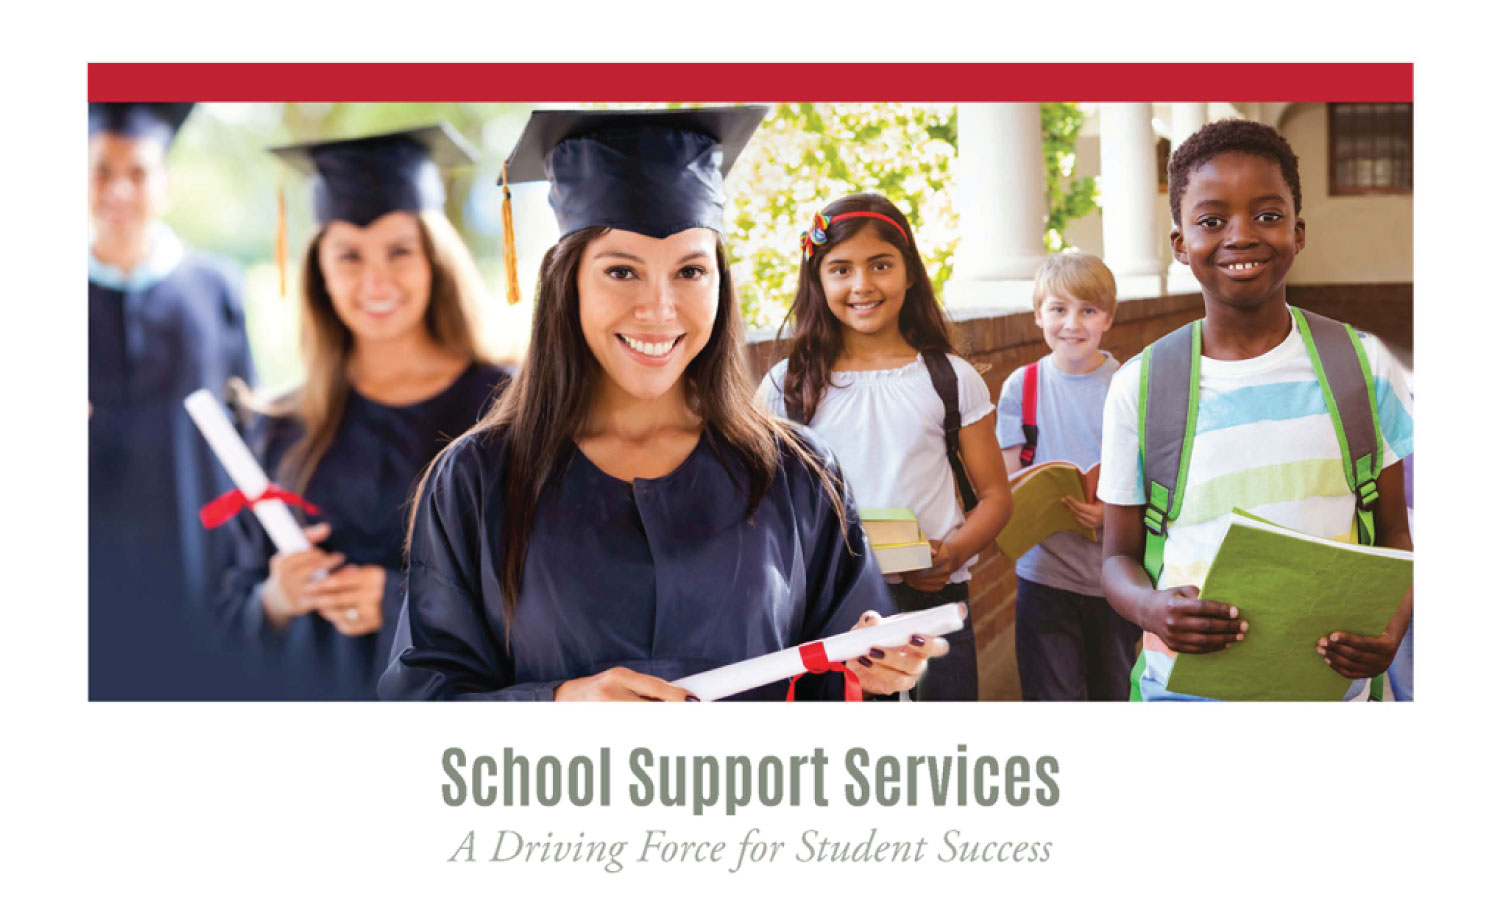 School-Support-Services-Web.jpg